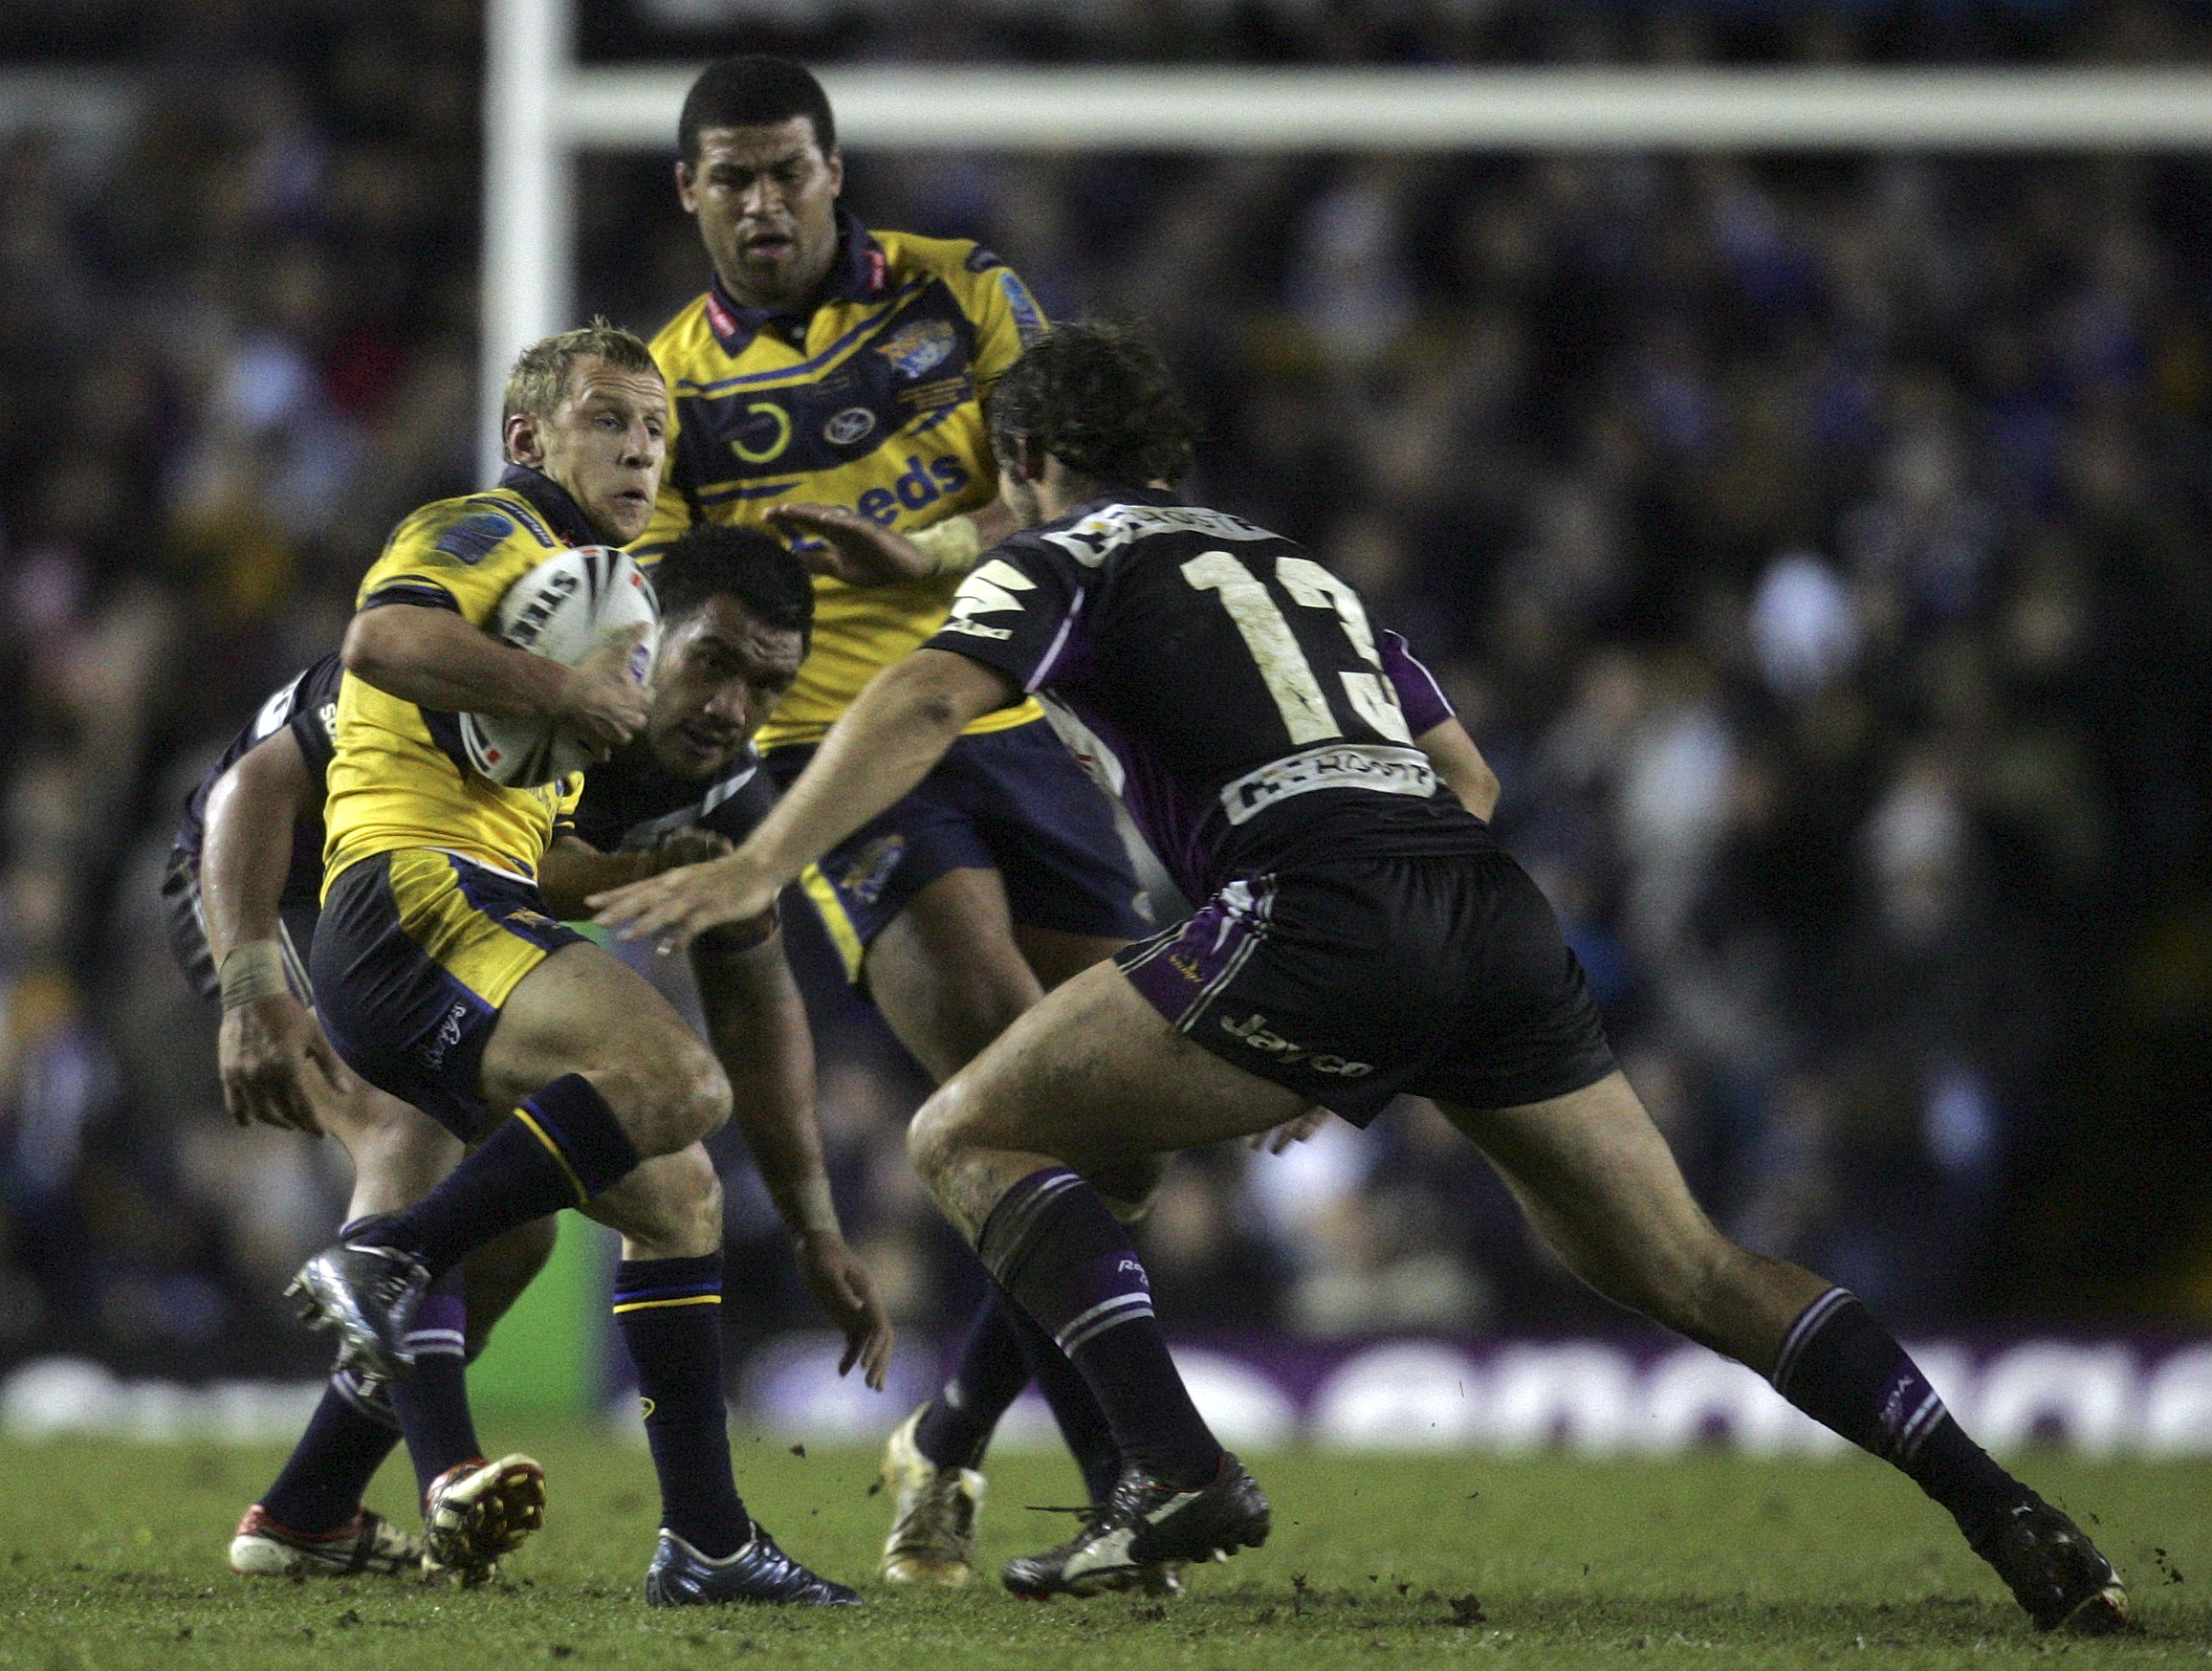 Leeds Rhinos' Rob Burrows, left, tries to evade the tackle of Melbourne Storm's Dallas Johnson, right, during their World Club Challenge, Rugby League...